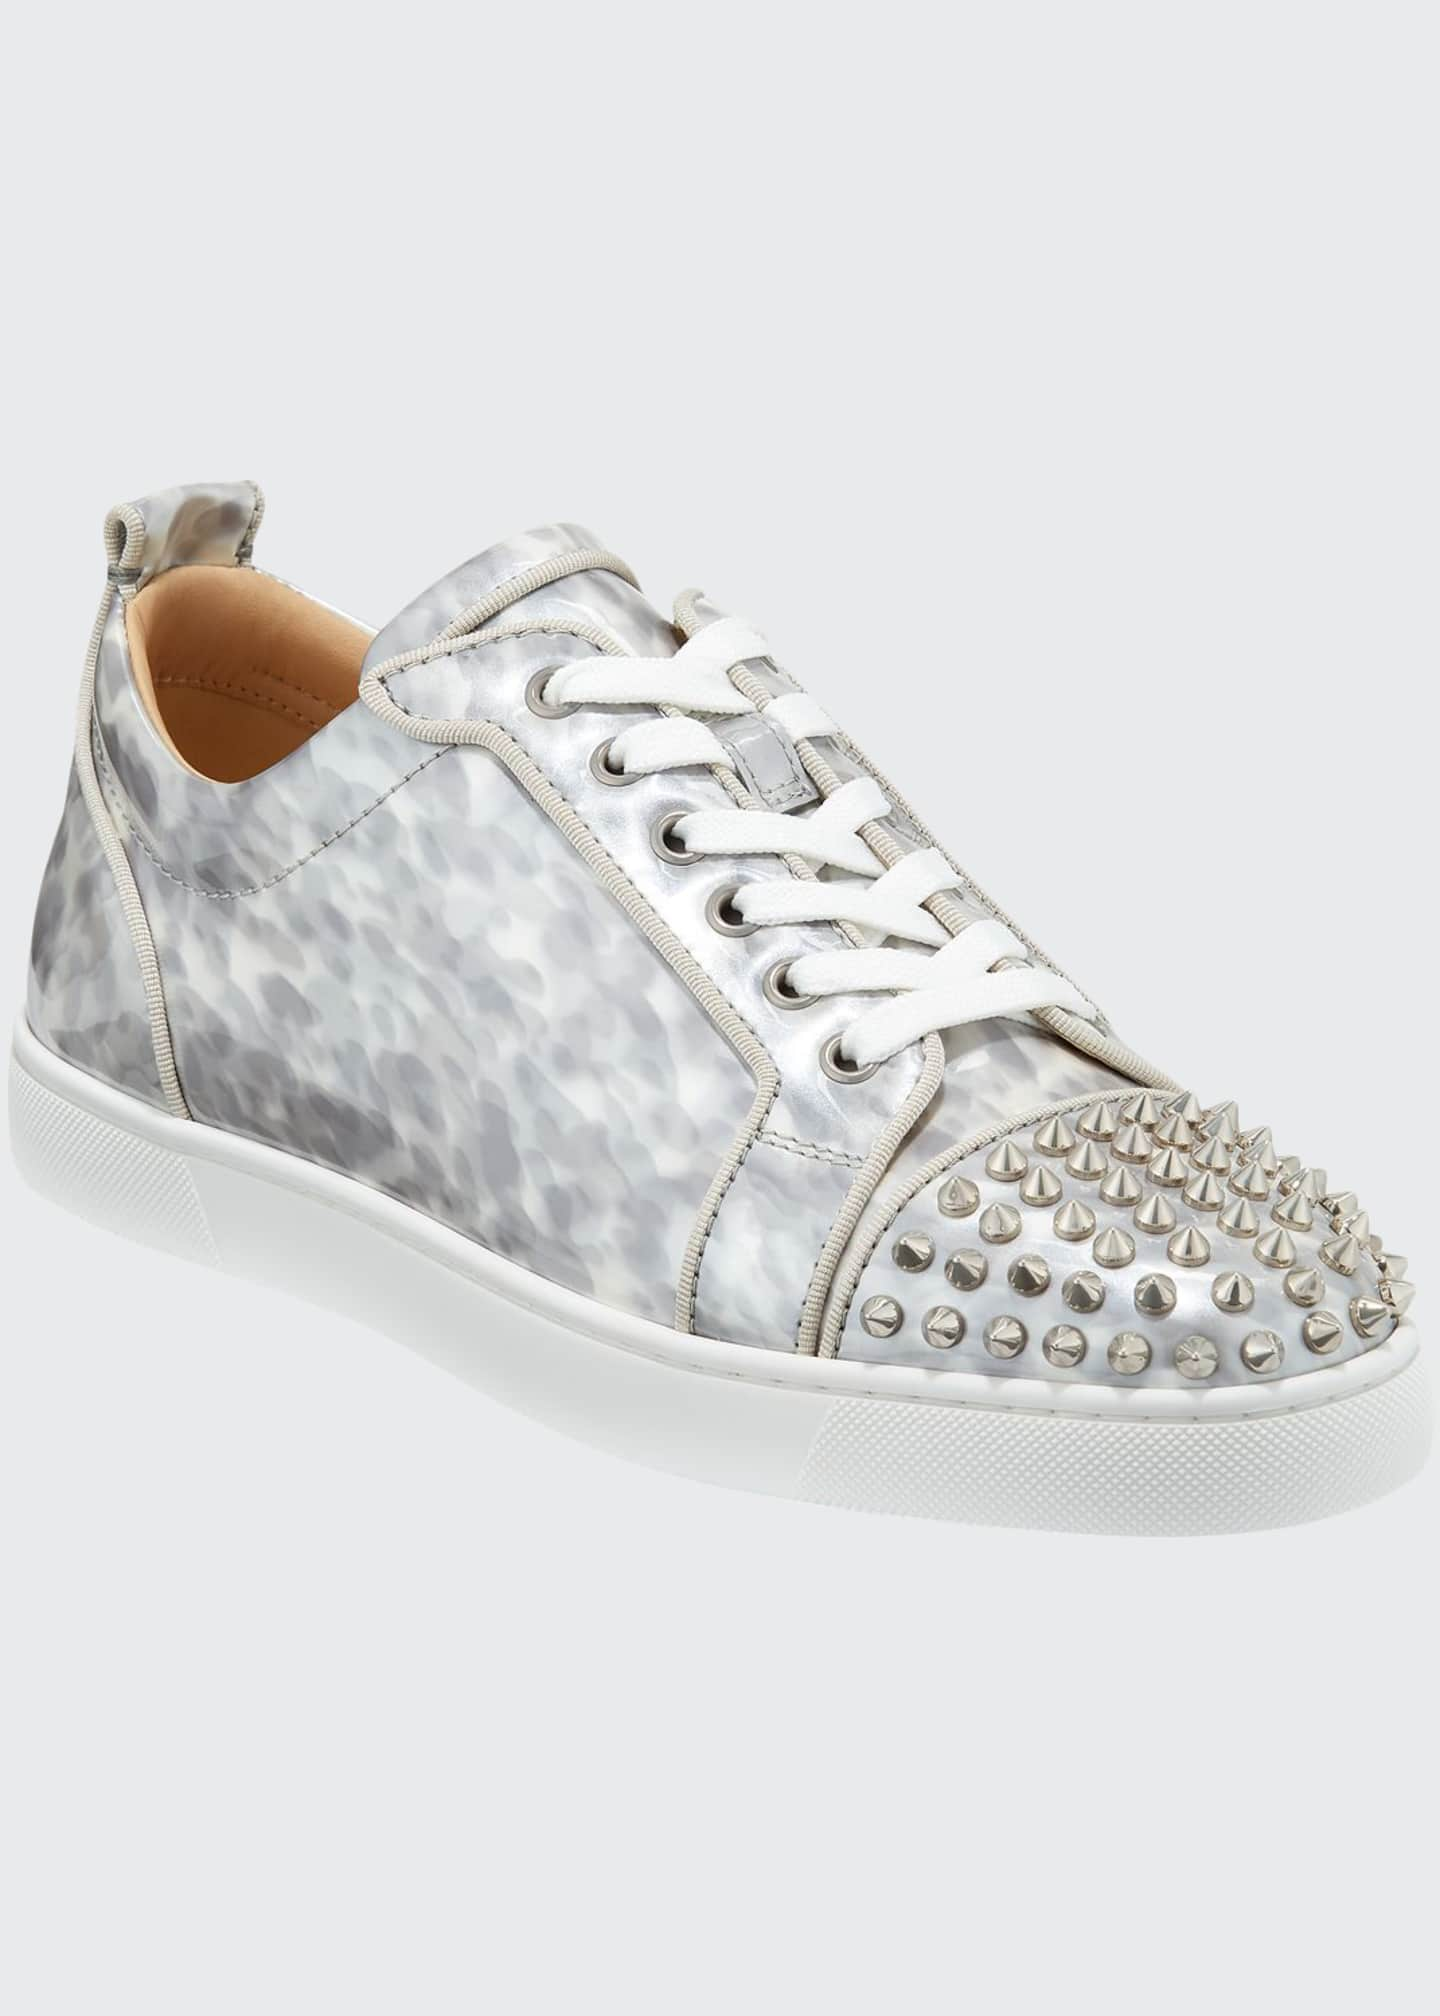 Christian Louboutin Men's Louis Junior Orlato Leather Sneakers